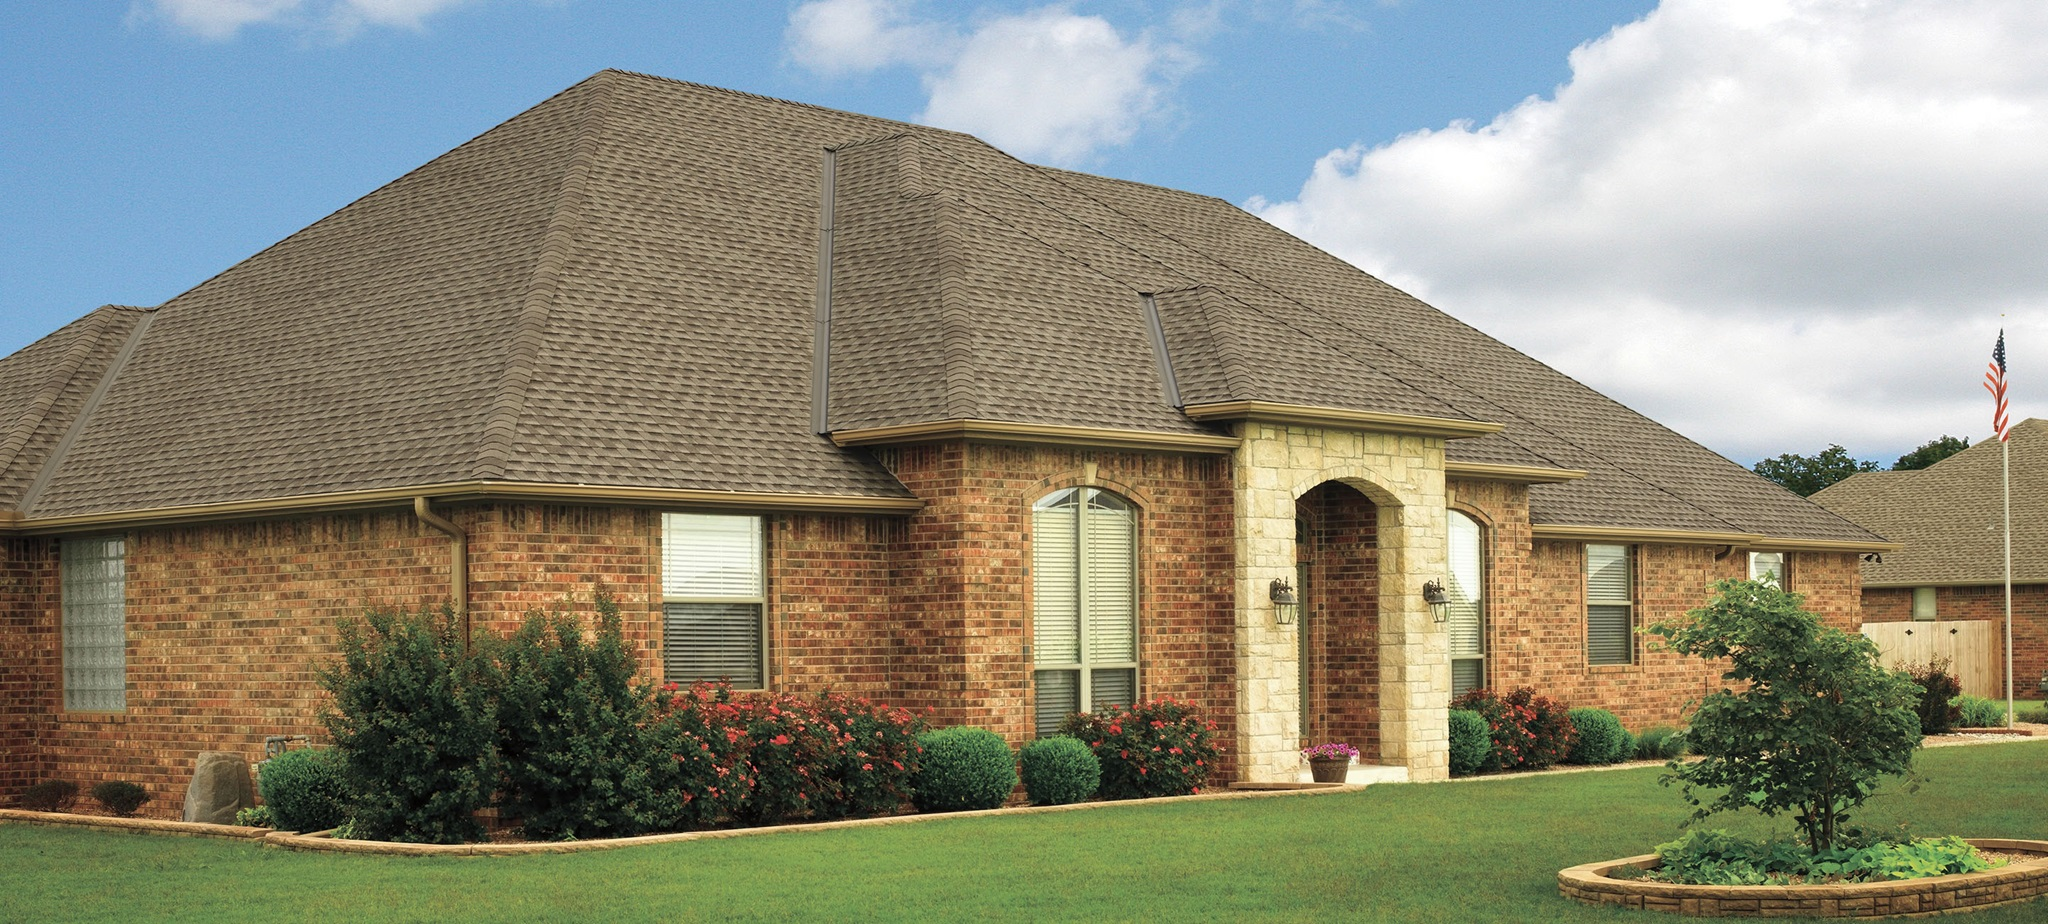 GAF Roofing Century Building Materials